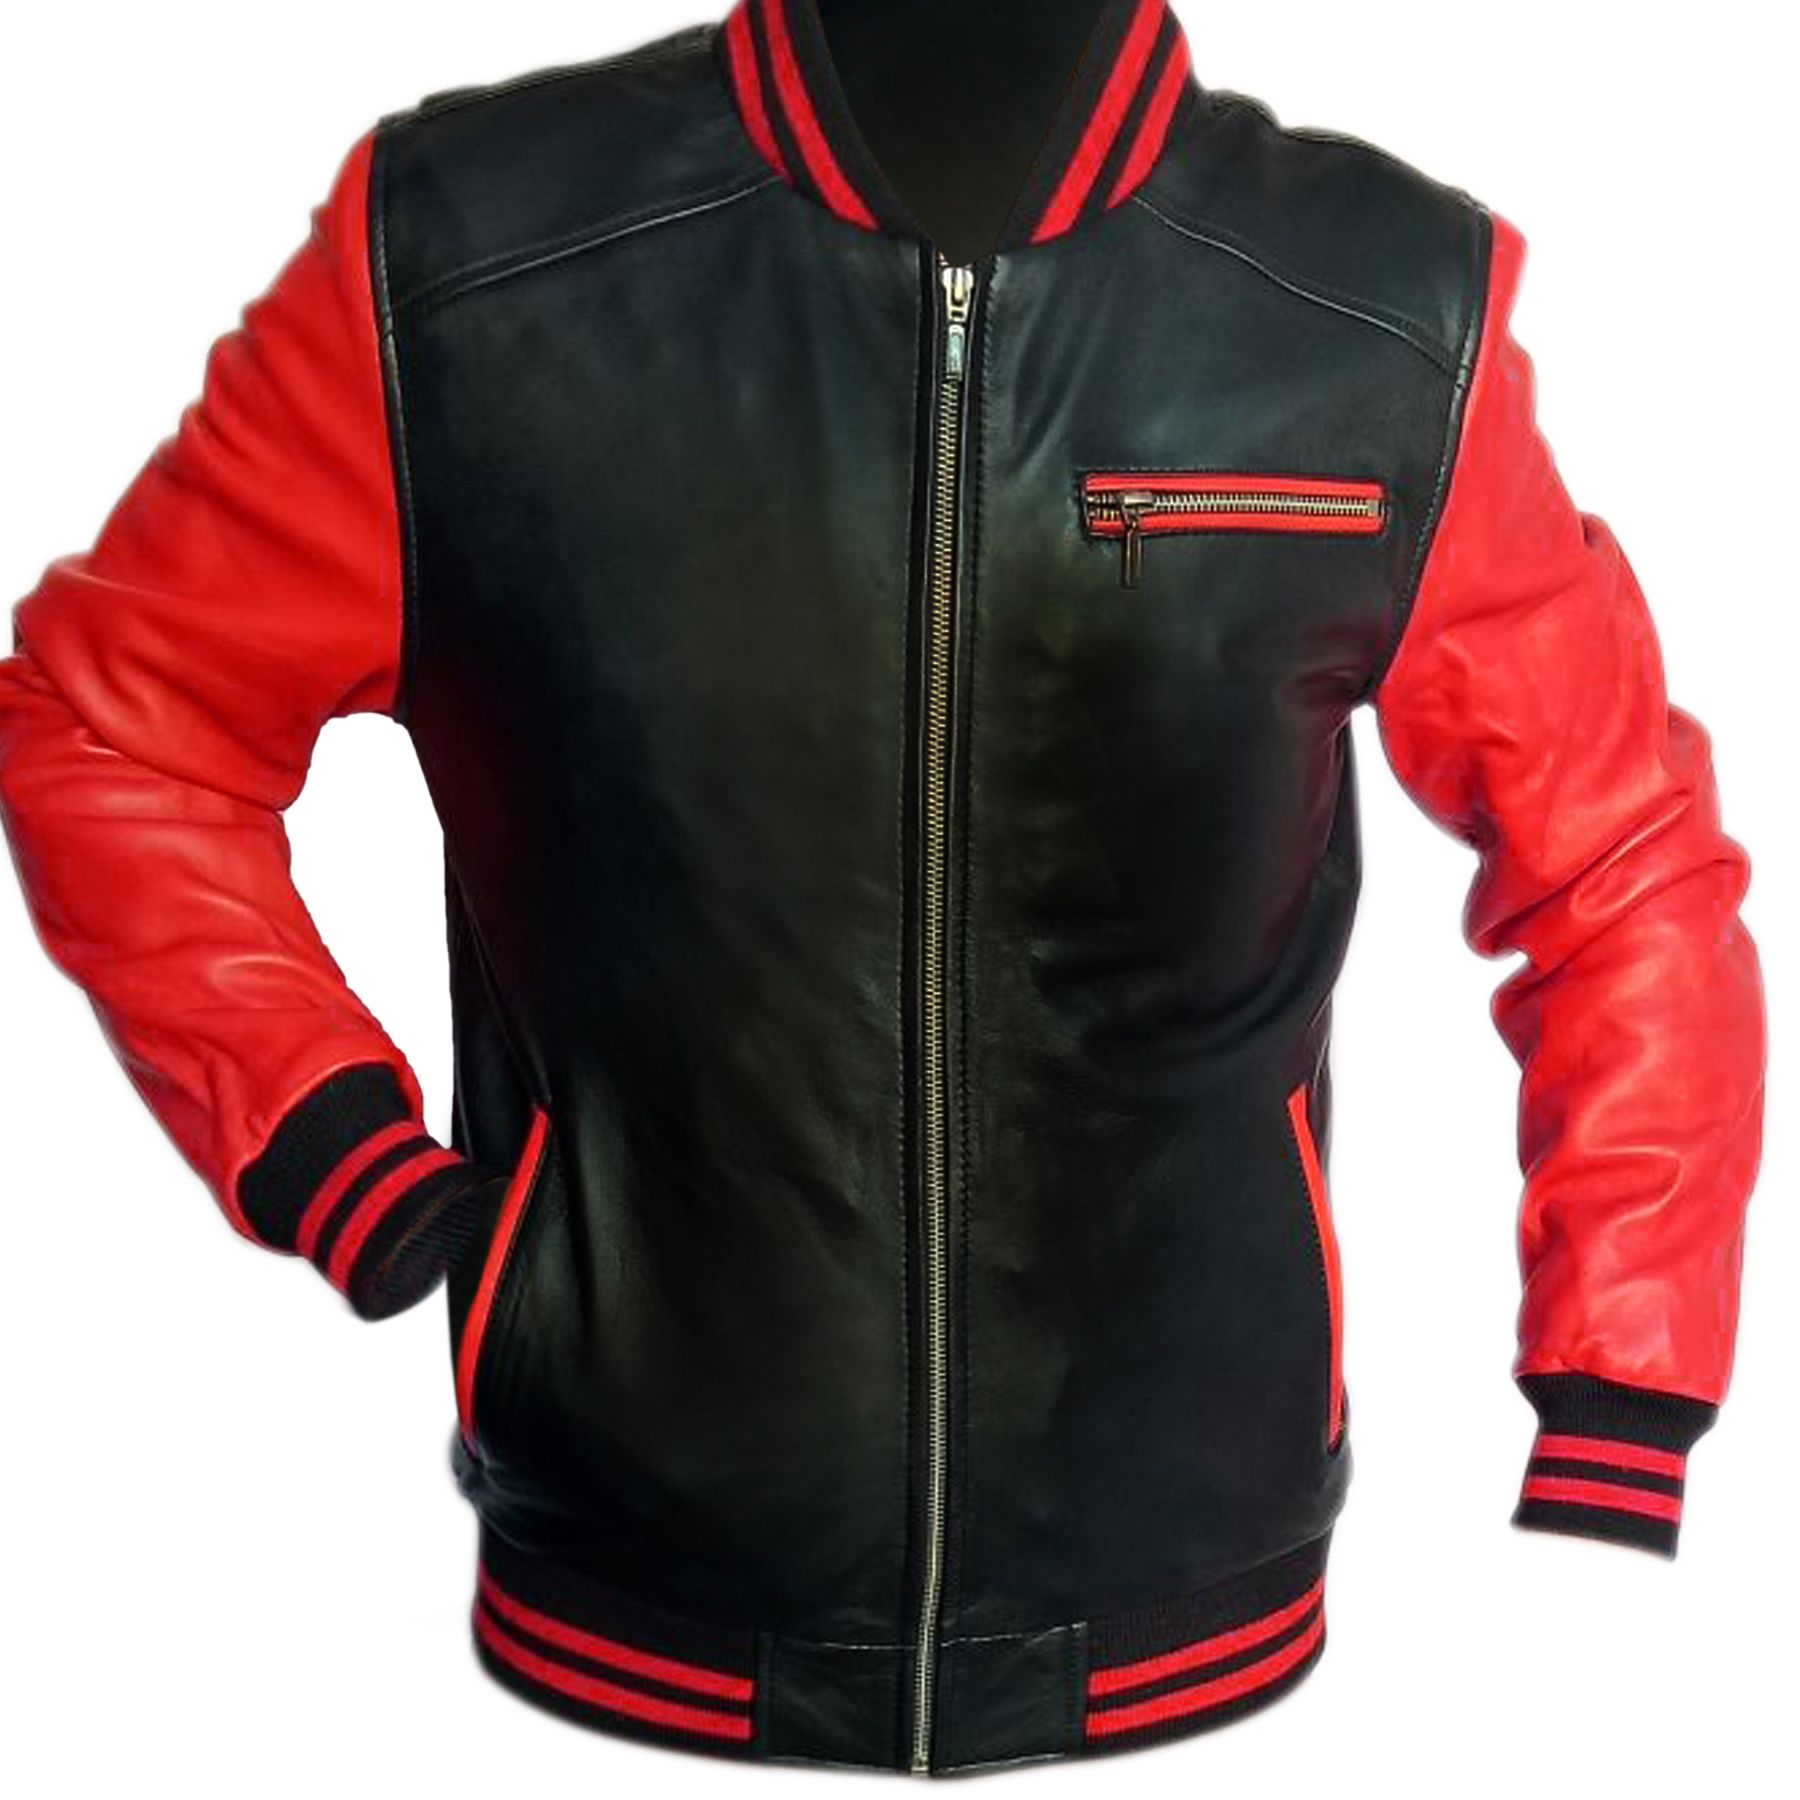 Red And Black Motorcycle Real Leather Jacket In Usa Uk Canada Germany France New York Los Angeles Chicago Houston Philadelphia Phoenix San Antonio S Red Leather Jacket Men Leather Jacket Style [ 1800 x 1800 Pixel ]